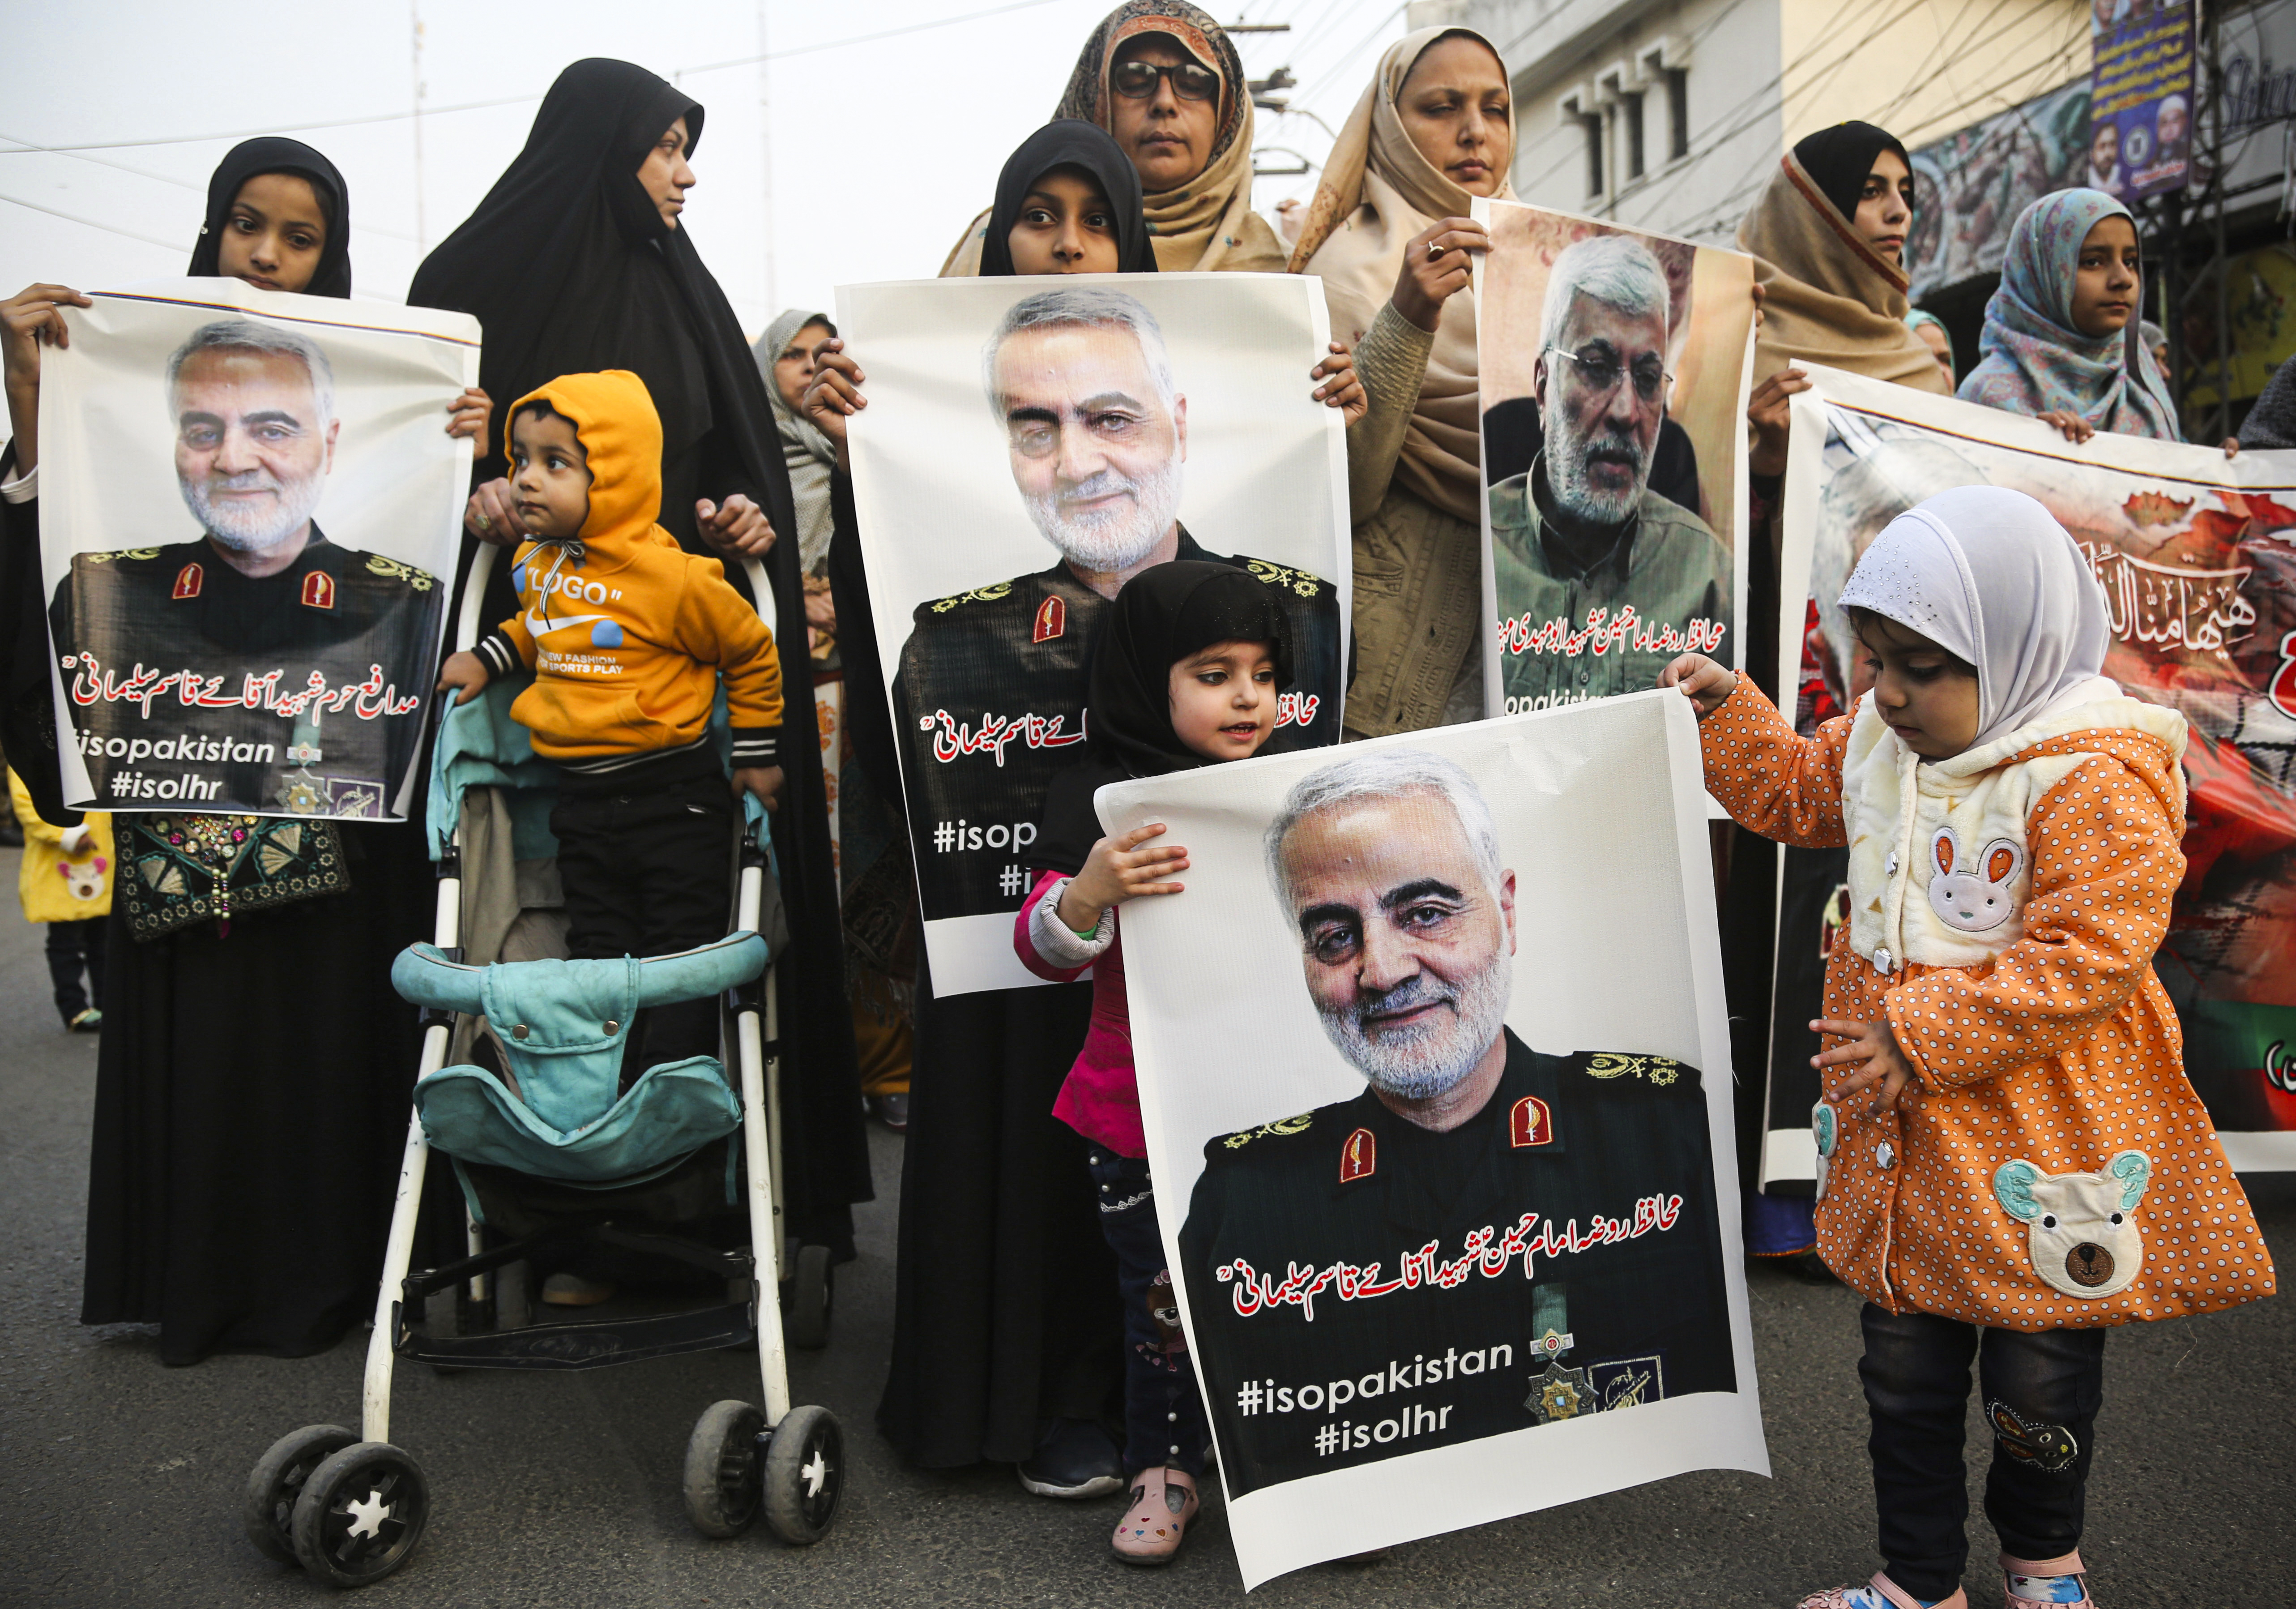 9 big questions about Qassem Soleimani's killing, answered by an expert